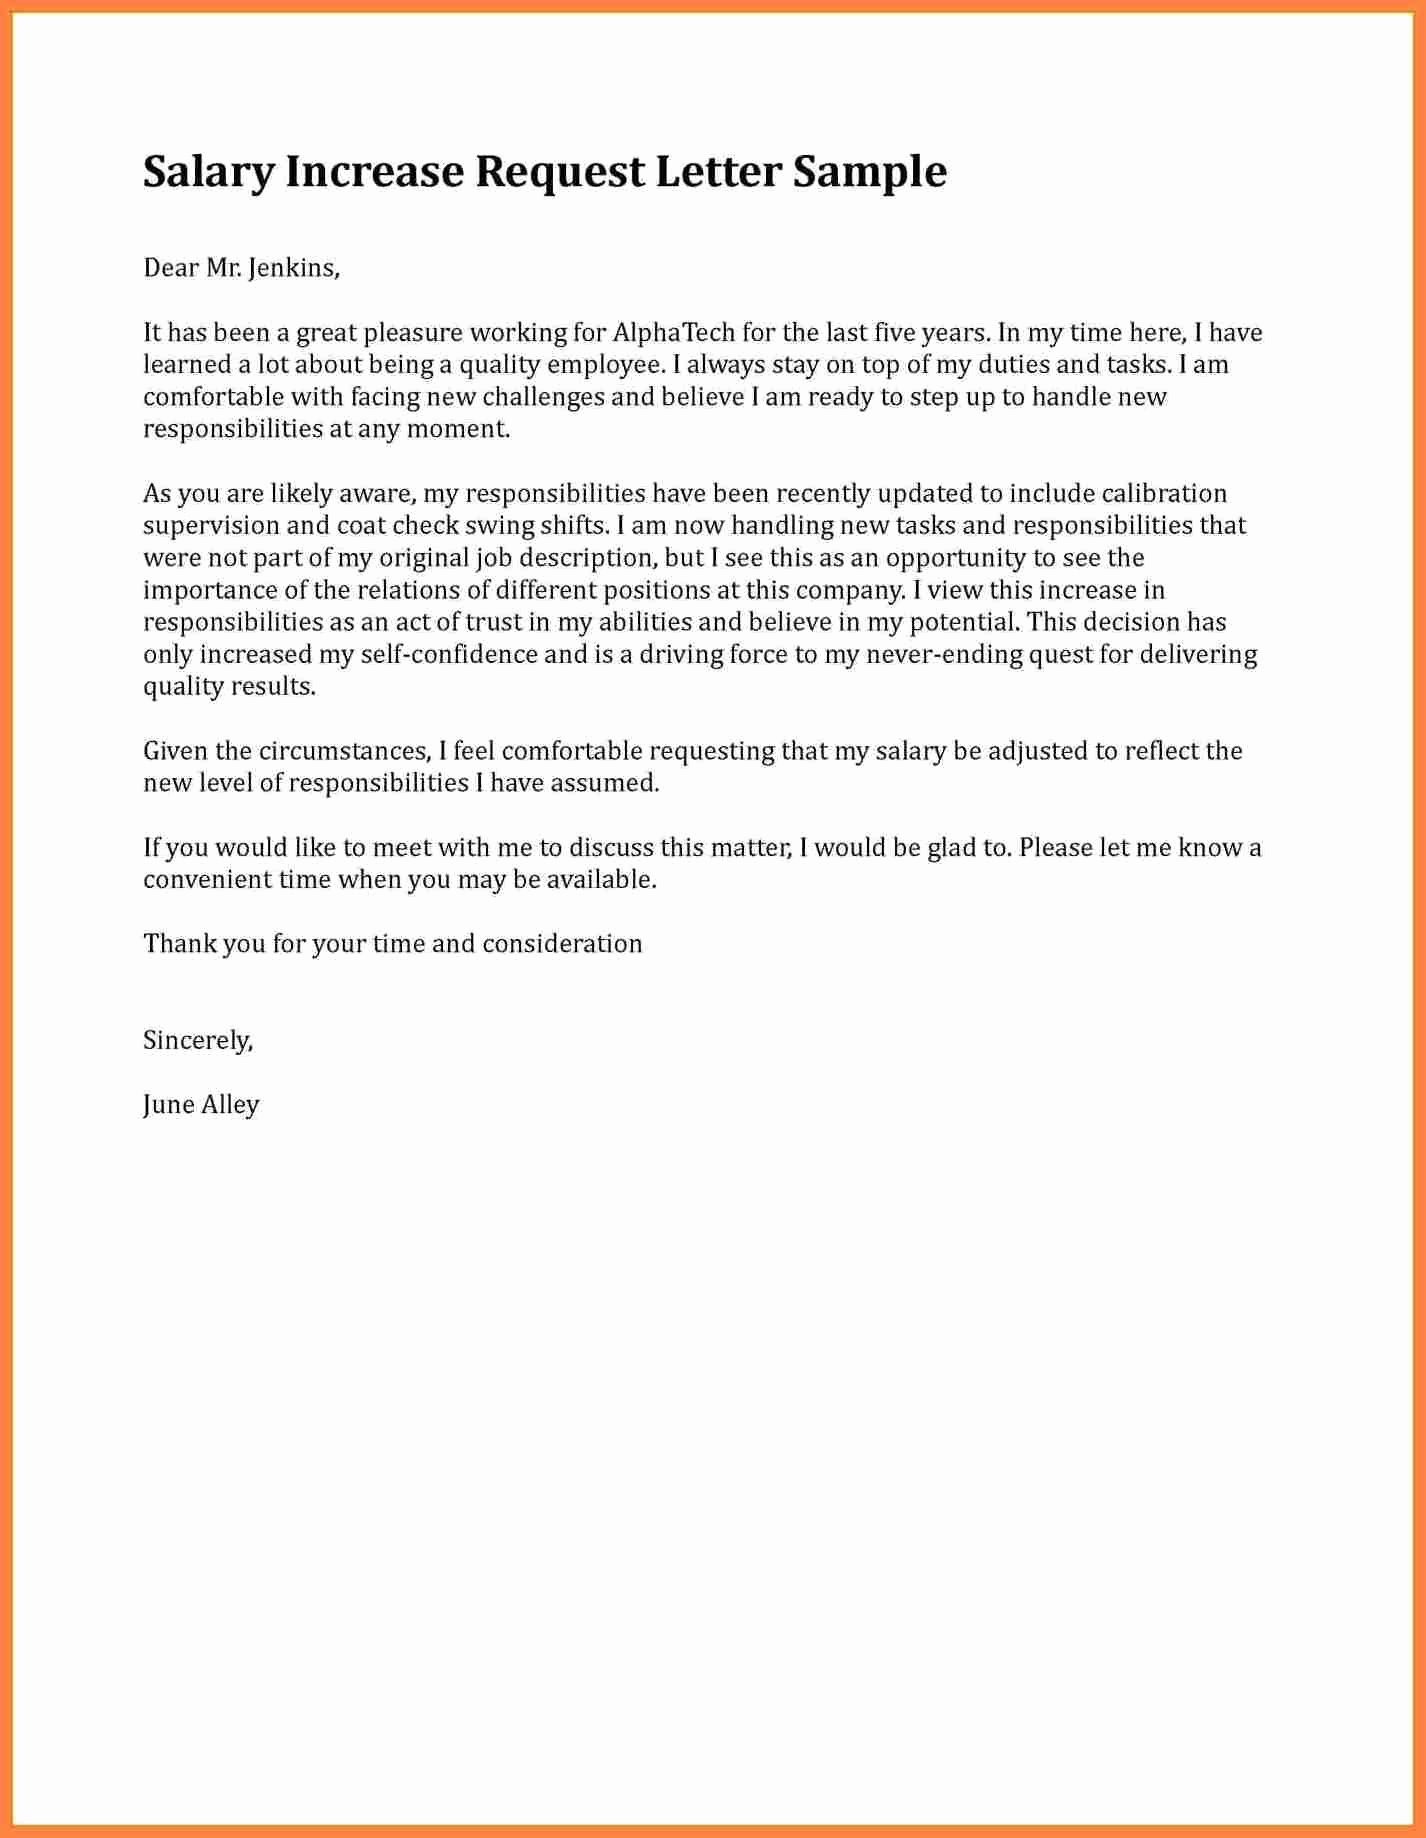 Salary Increase Letter format Inspirational 9 Salary Adjustment Letter Sample